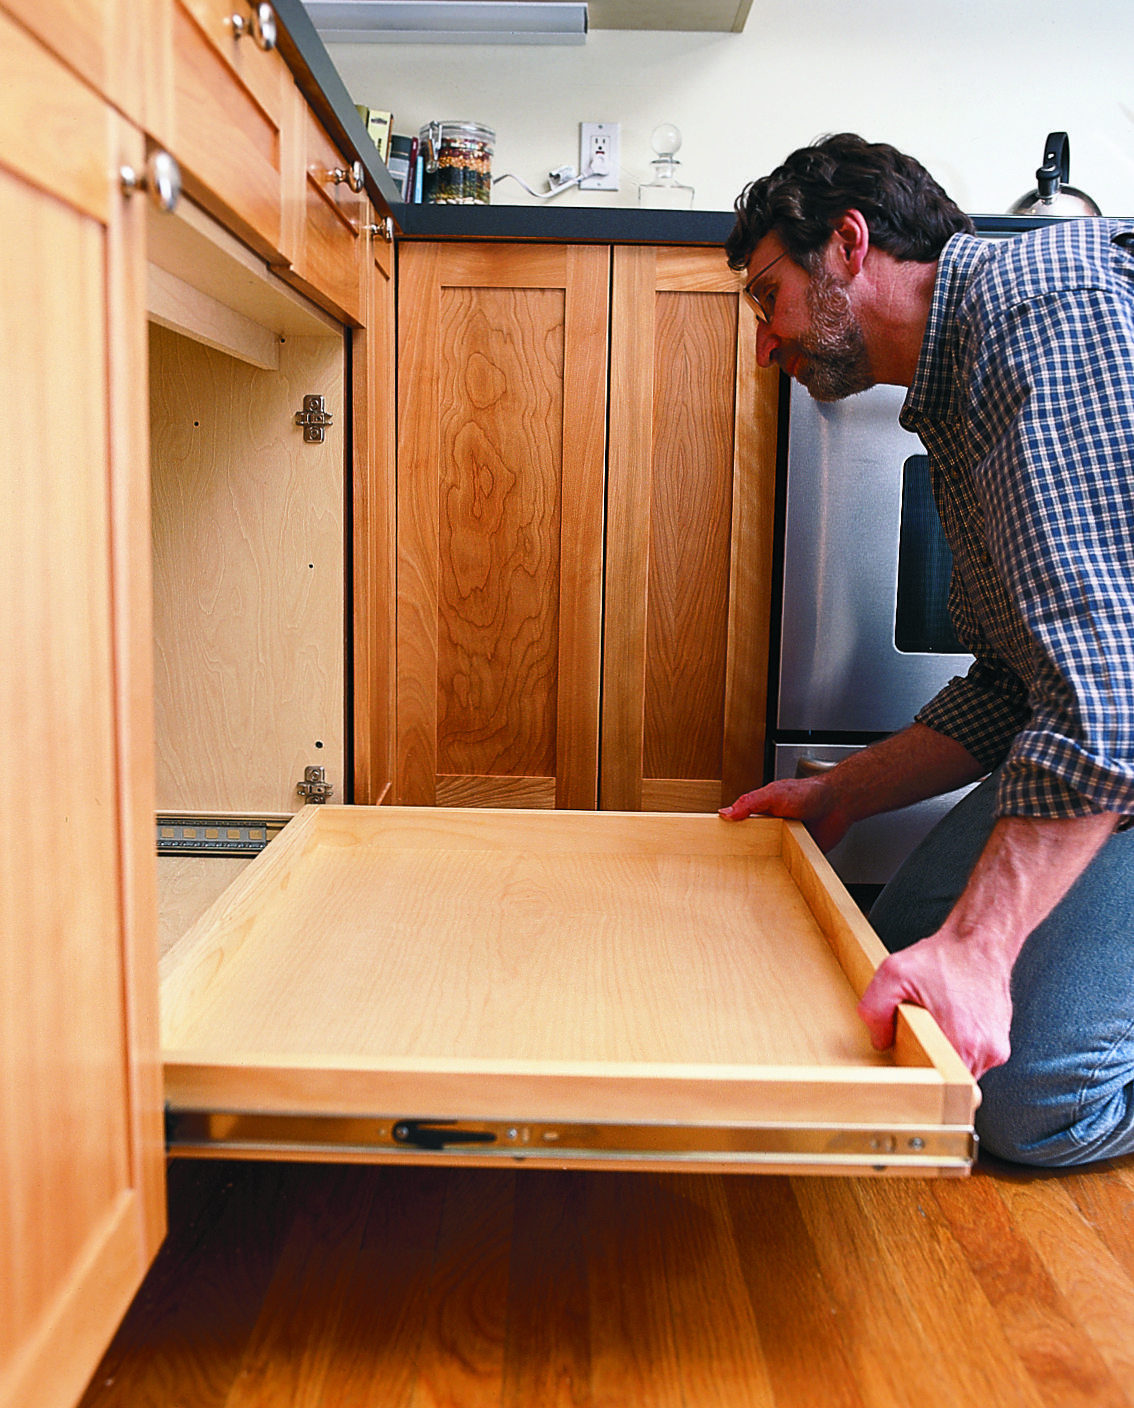 How To Install A Pull Out Kitchen Shelf Pull Out Kitchen Shelves Kitchen Base Cabinets Diy Kitchen Cabinets